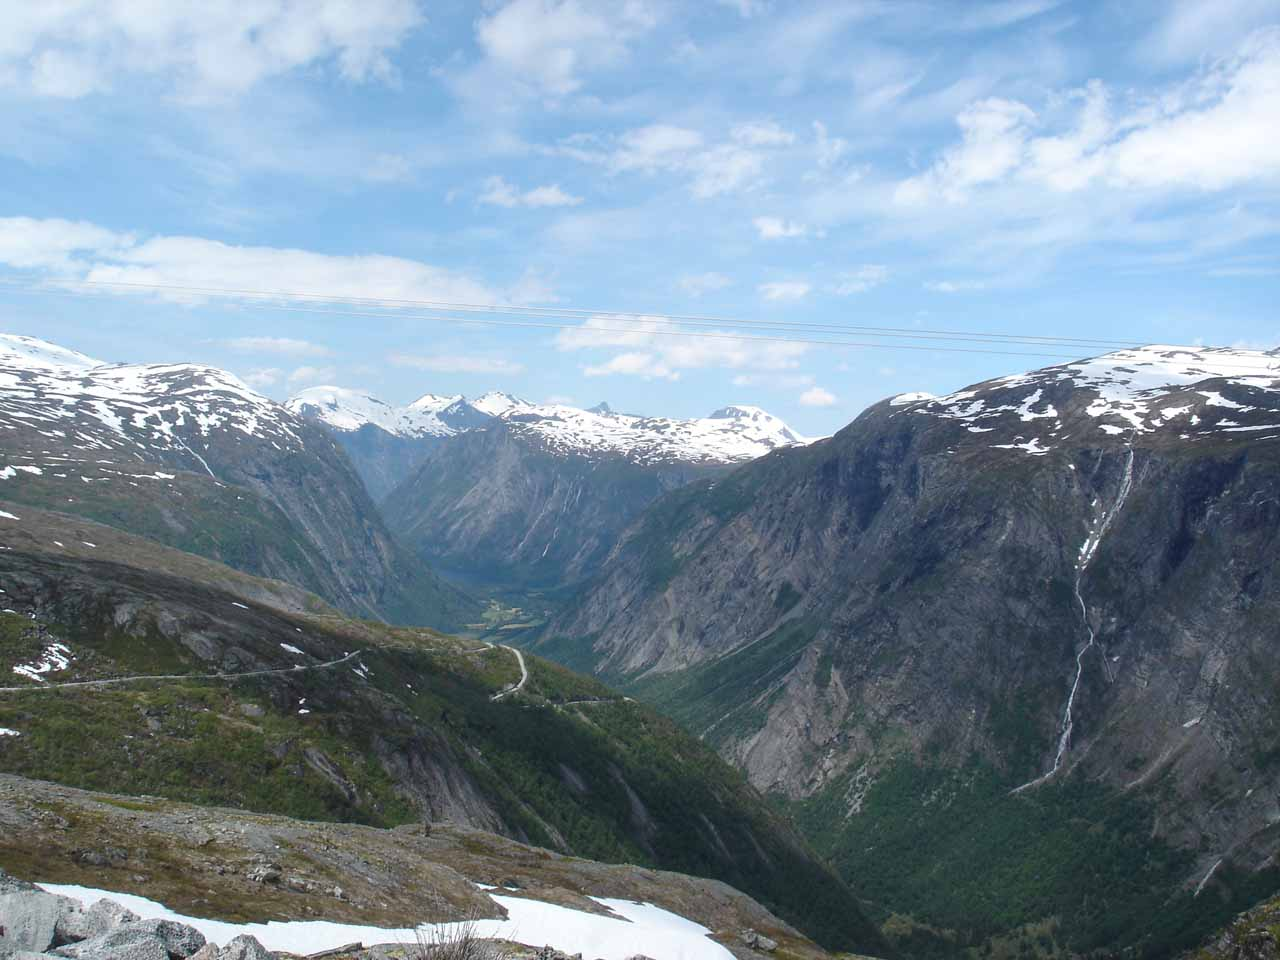 In addition to Mardalsfossen, another compelling reason why we enjoyed our visit to Eikesdalen was the surprising waterfalls found in Eikesdalen, including those seen along Aursjøvegen